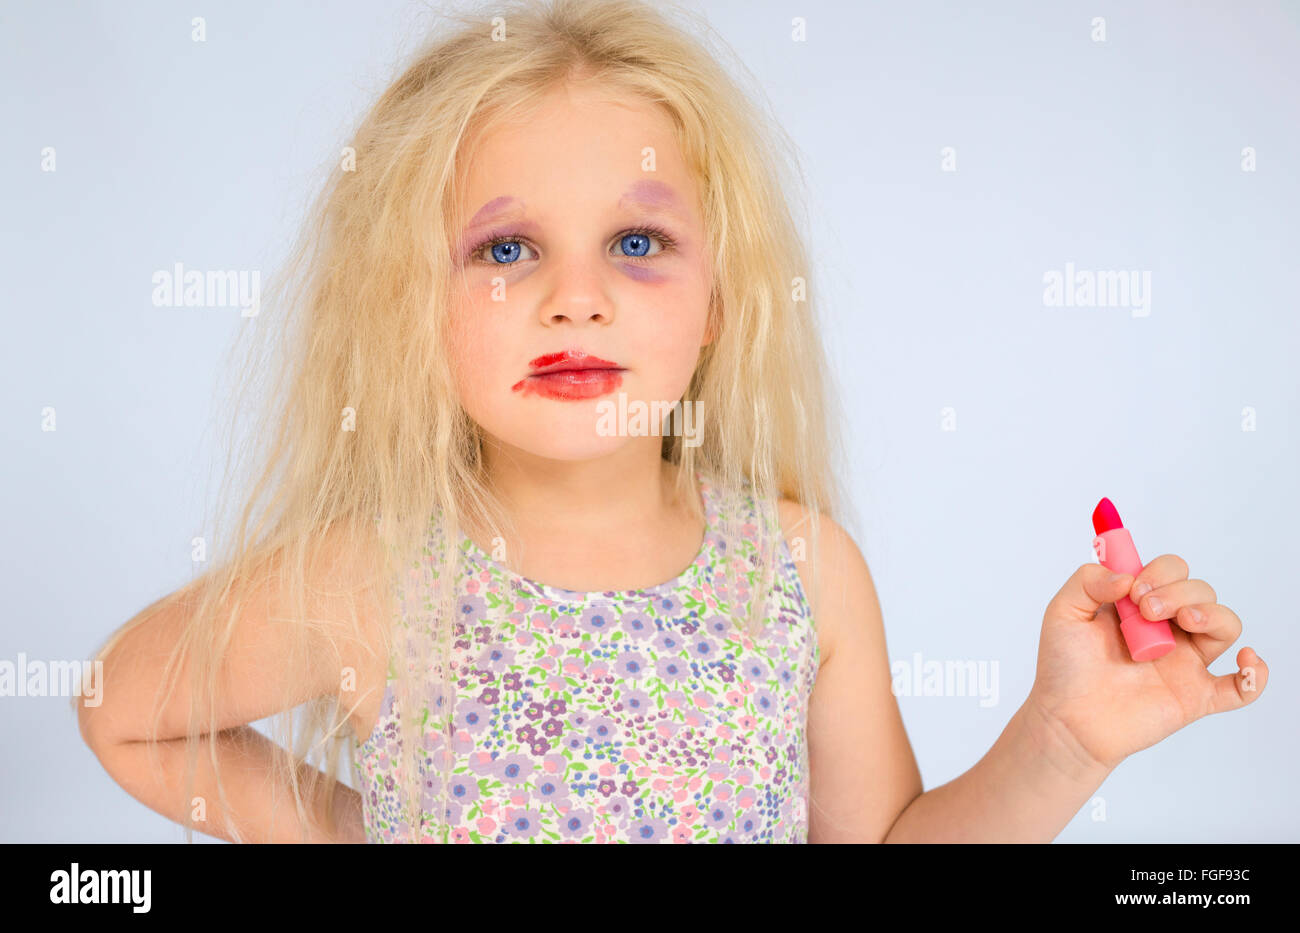 Young girl with blonde hair wearing smudged make up holding a red lipstick - Stock Image